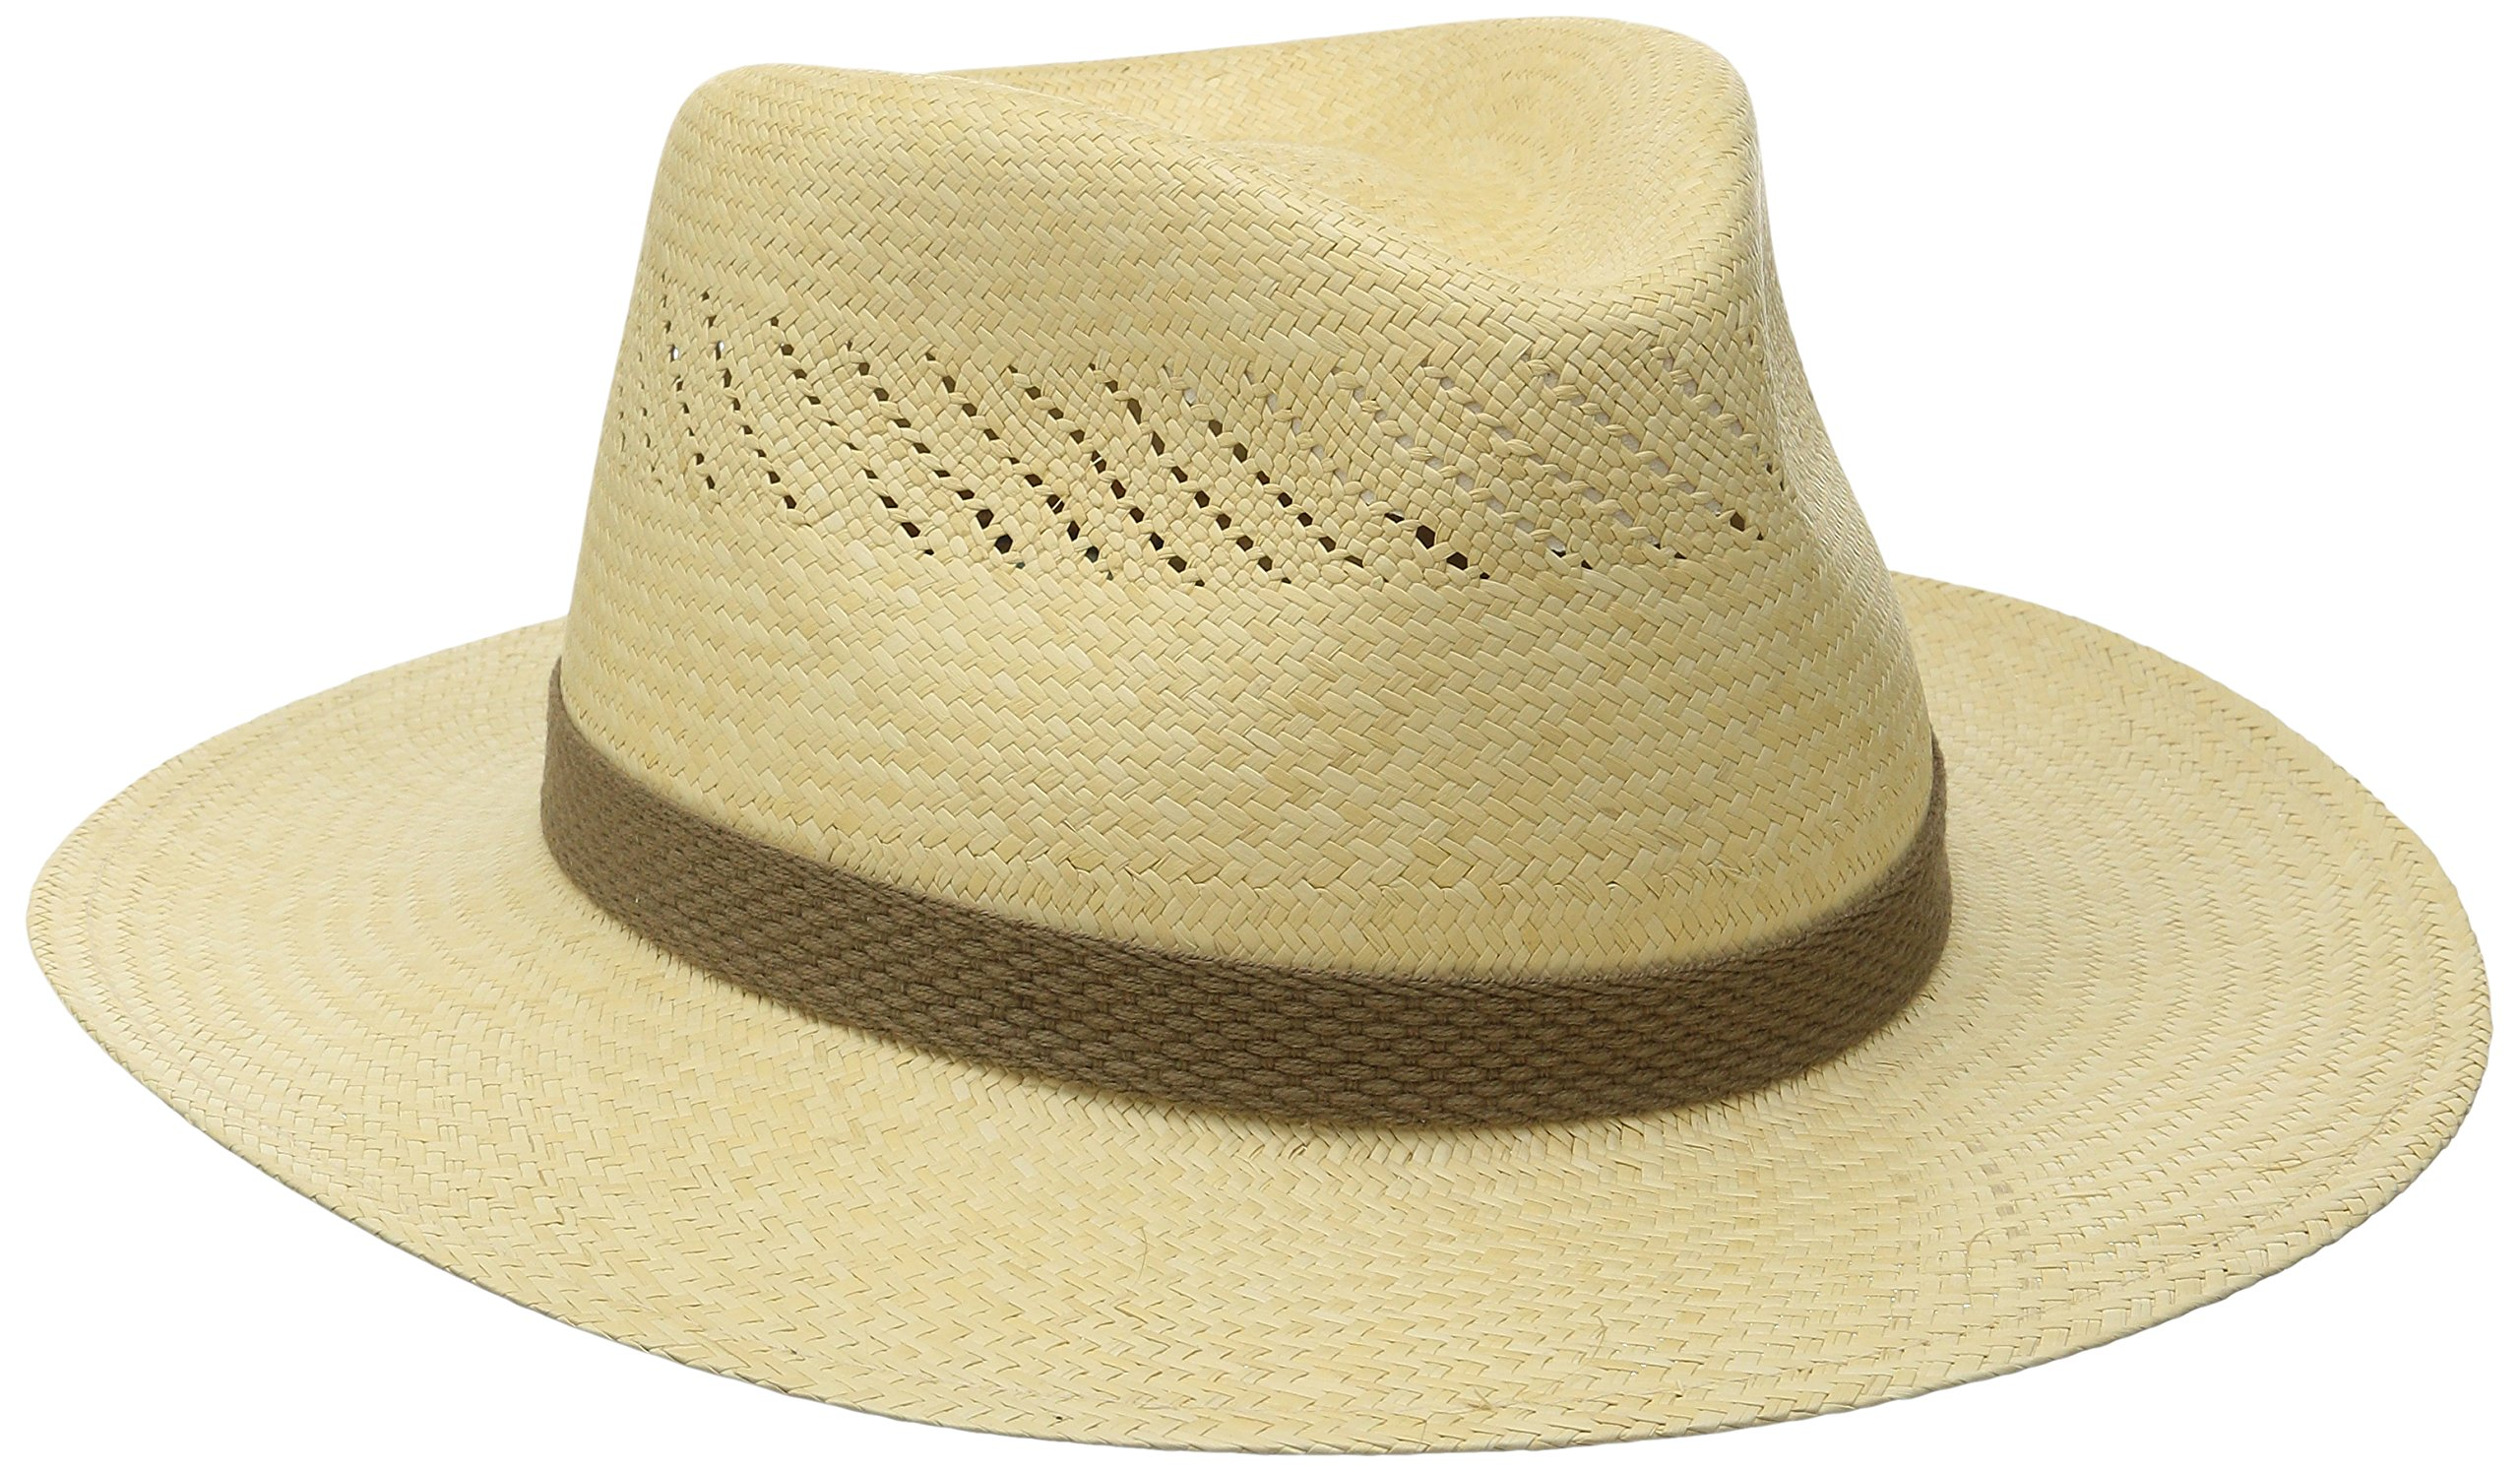 Tommy Bahama Men's Panama Vent Outback Hat, Natural, XX-Large